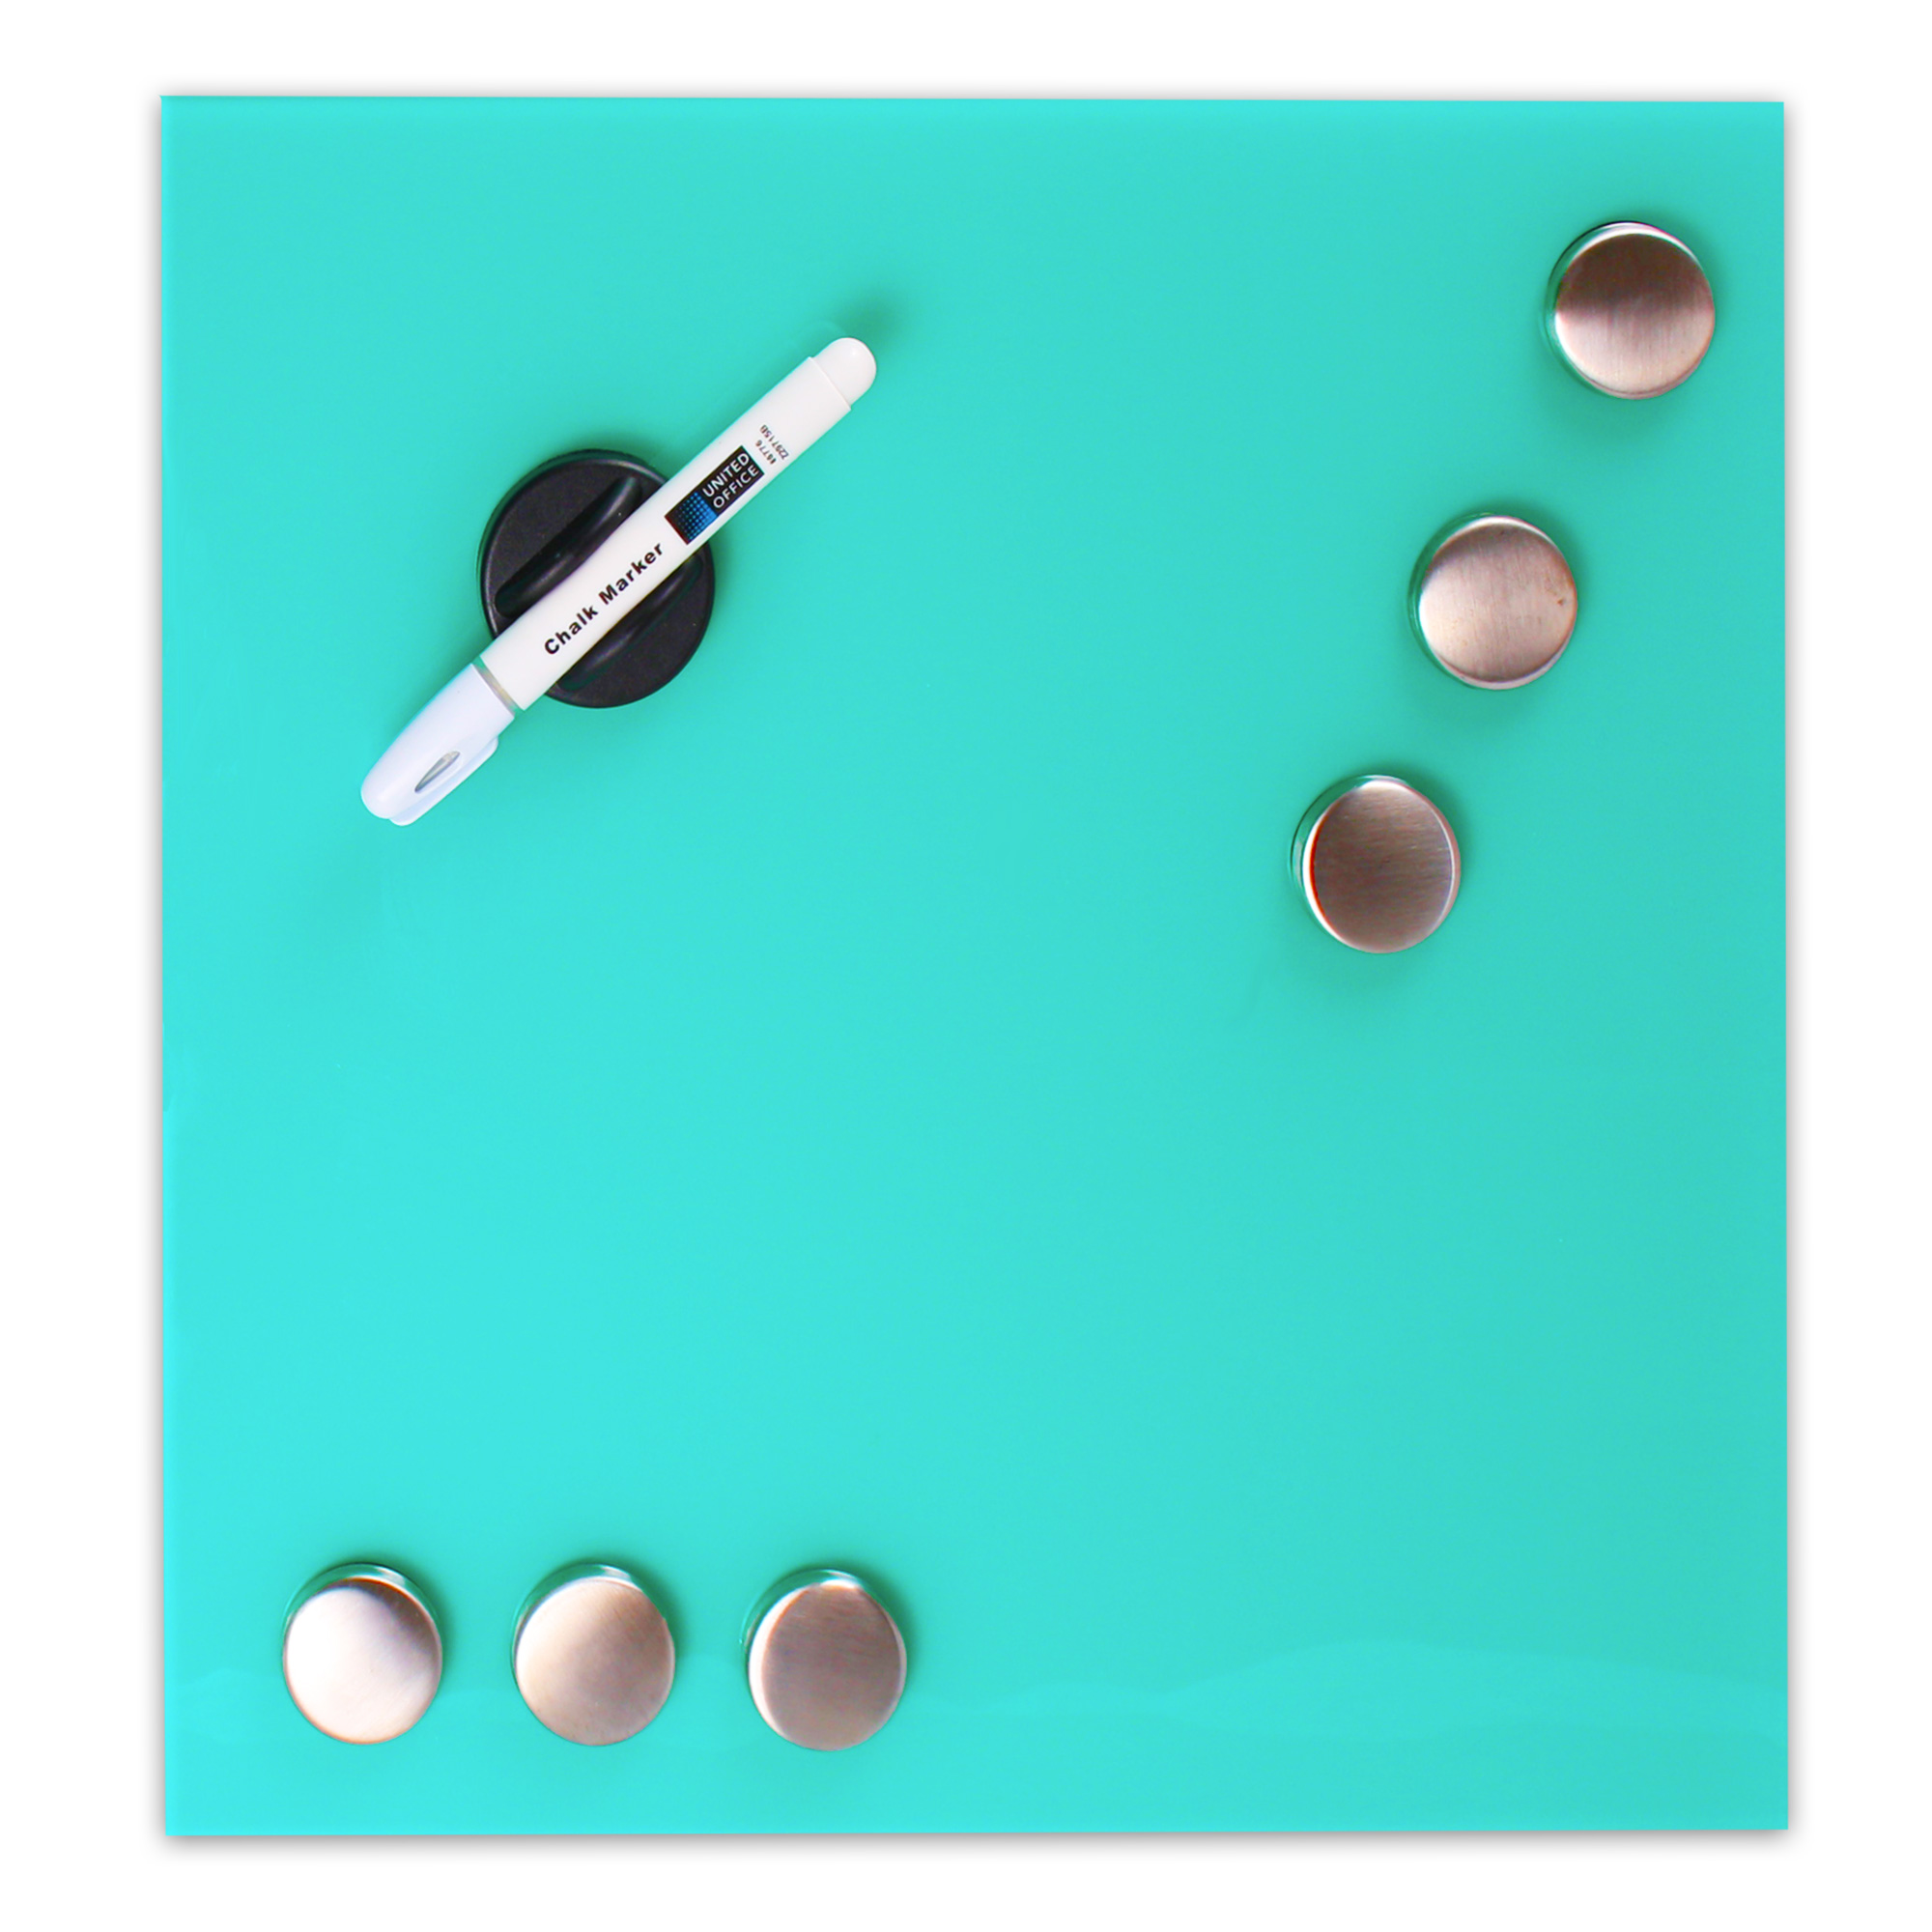 memoboard memo board whiteboard magnet board magnet wall pin board turquoise ebay. Black Bedroom Furniture Sets. Home Design Ideas